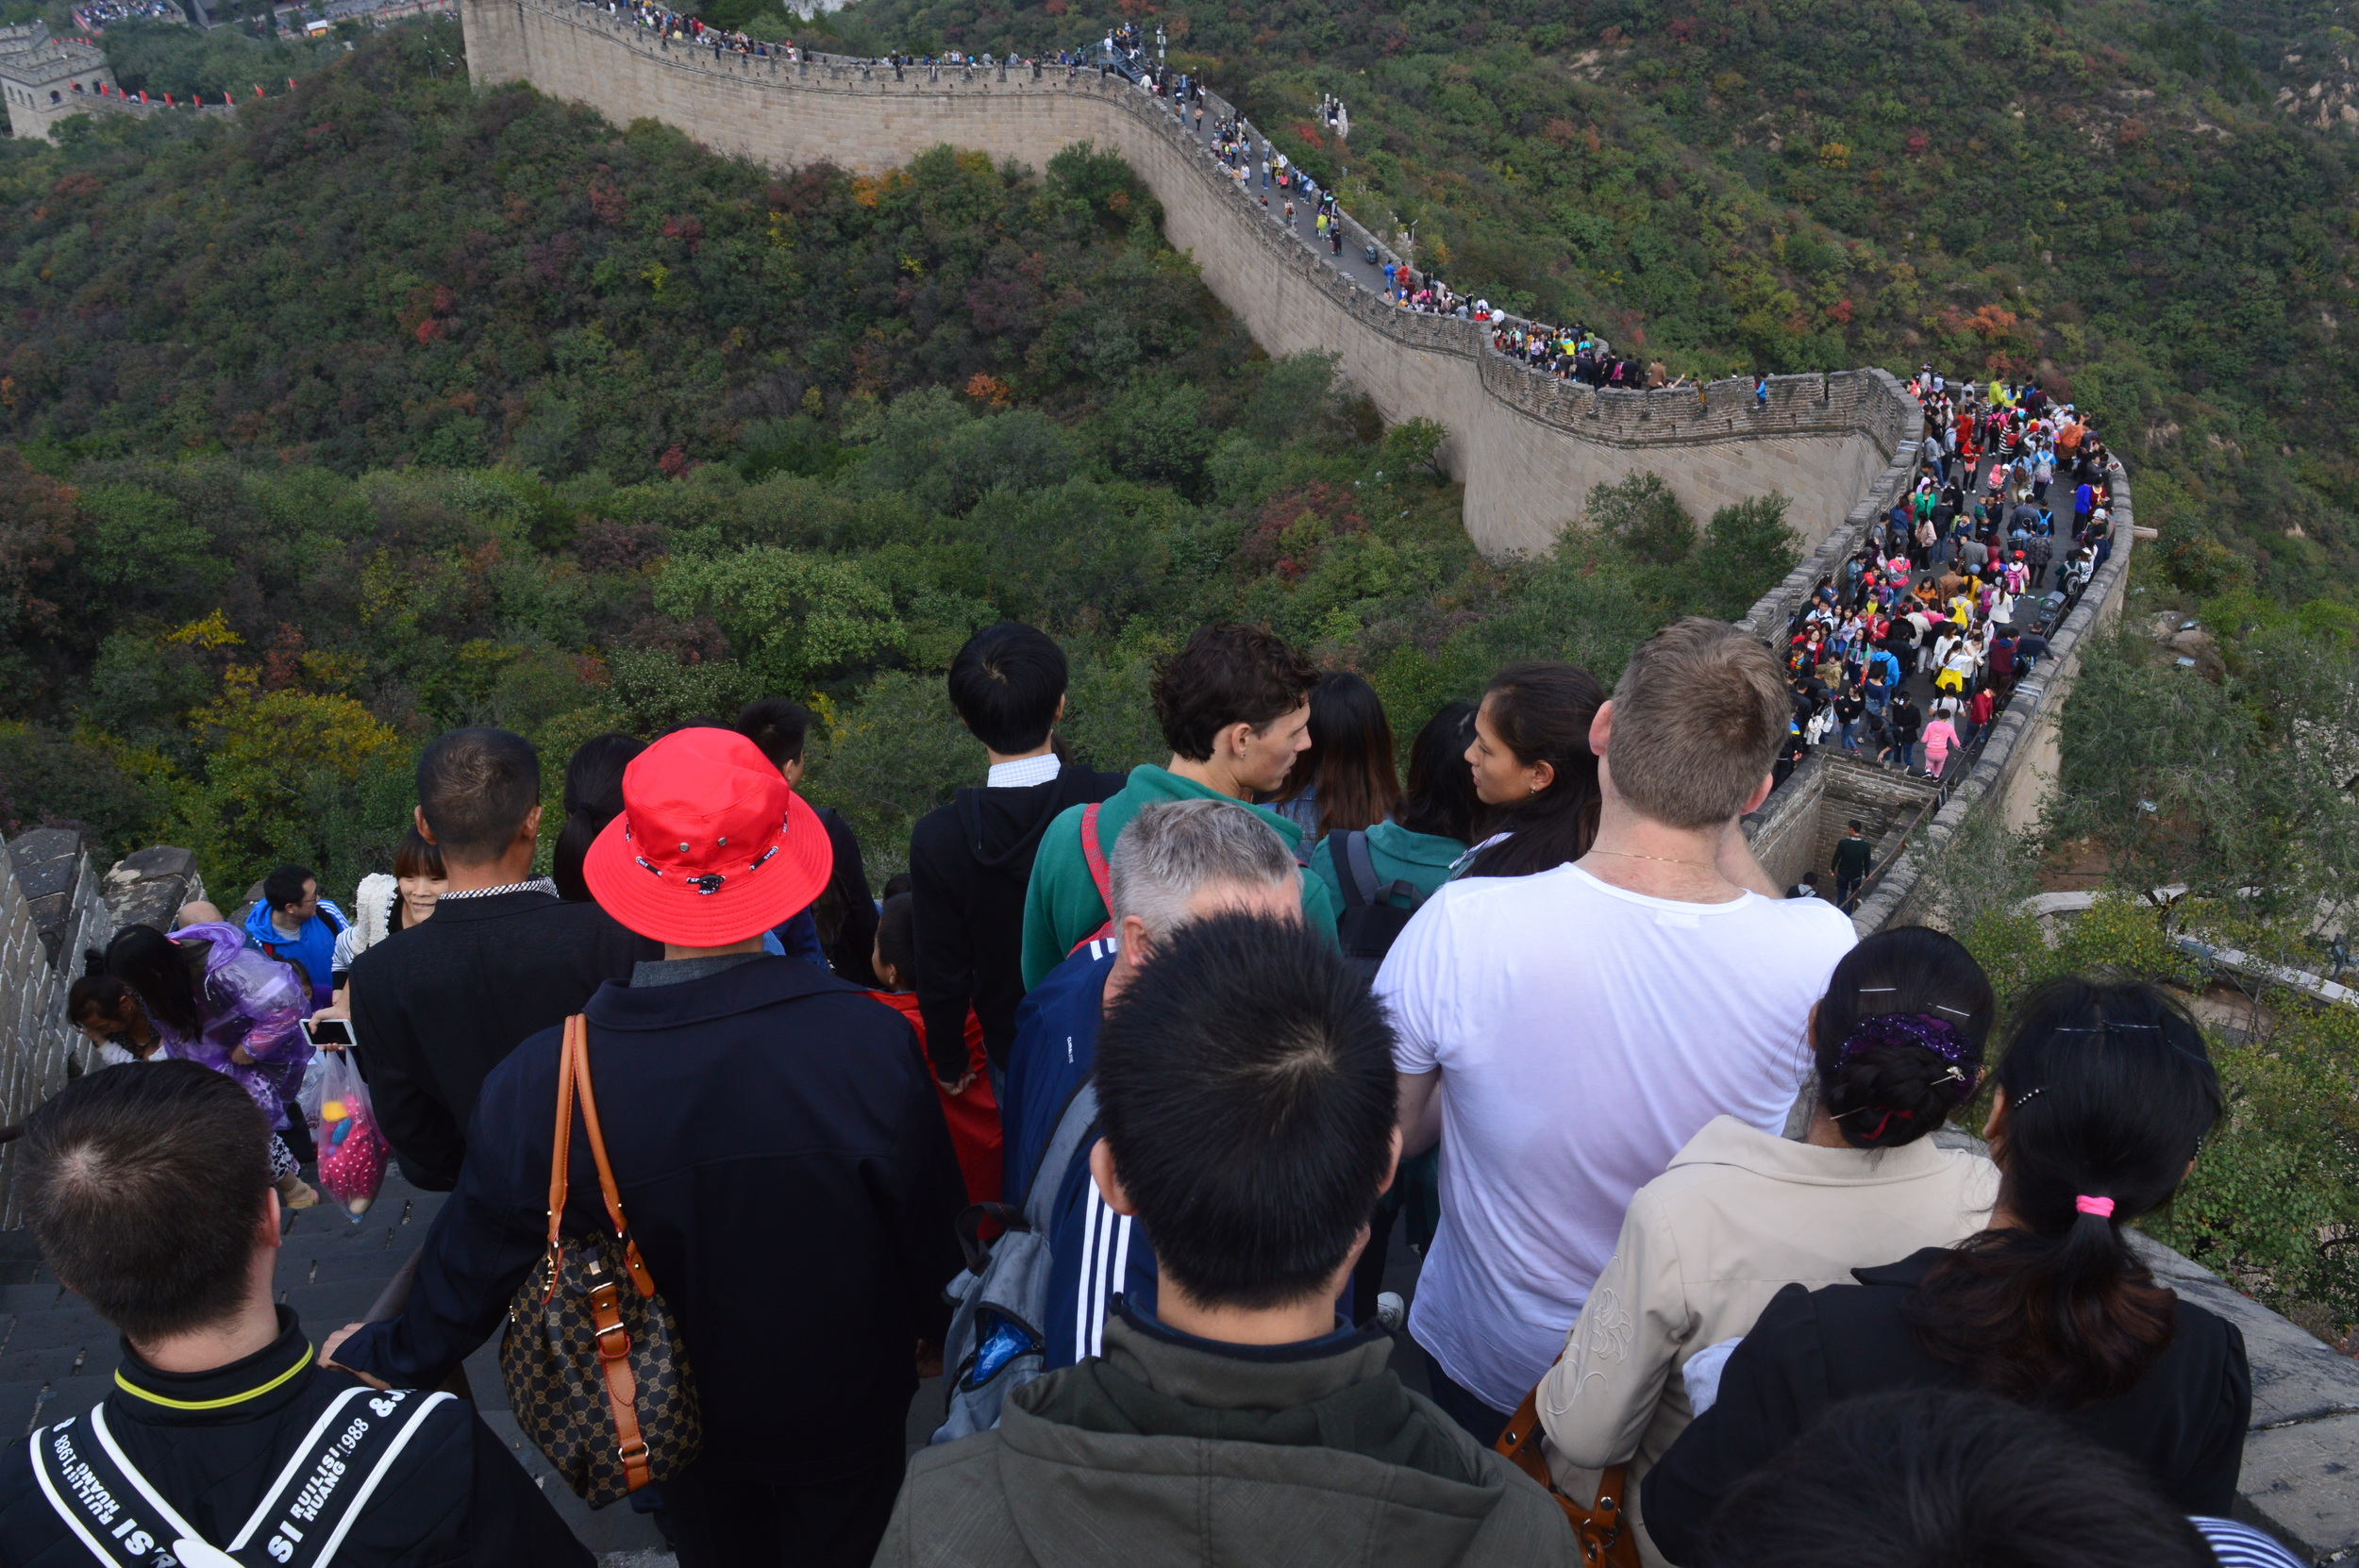 a crowded Great Wall during China's Golden Week